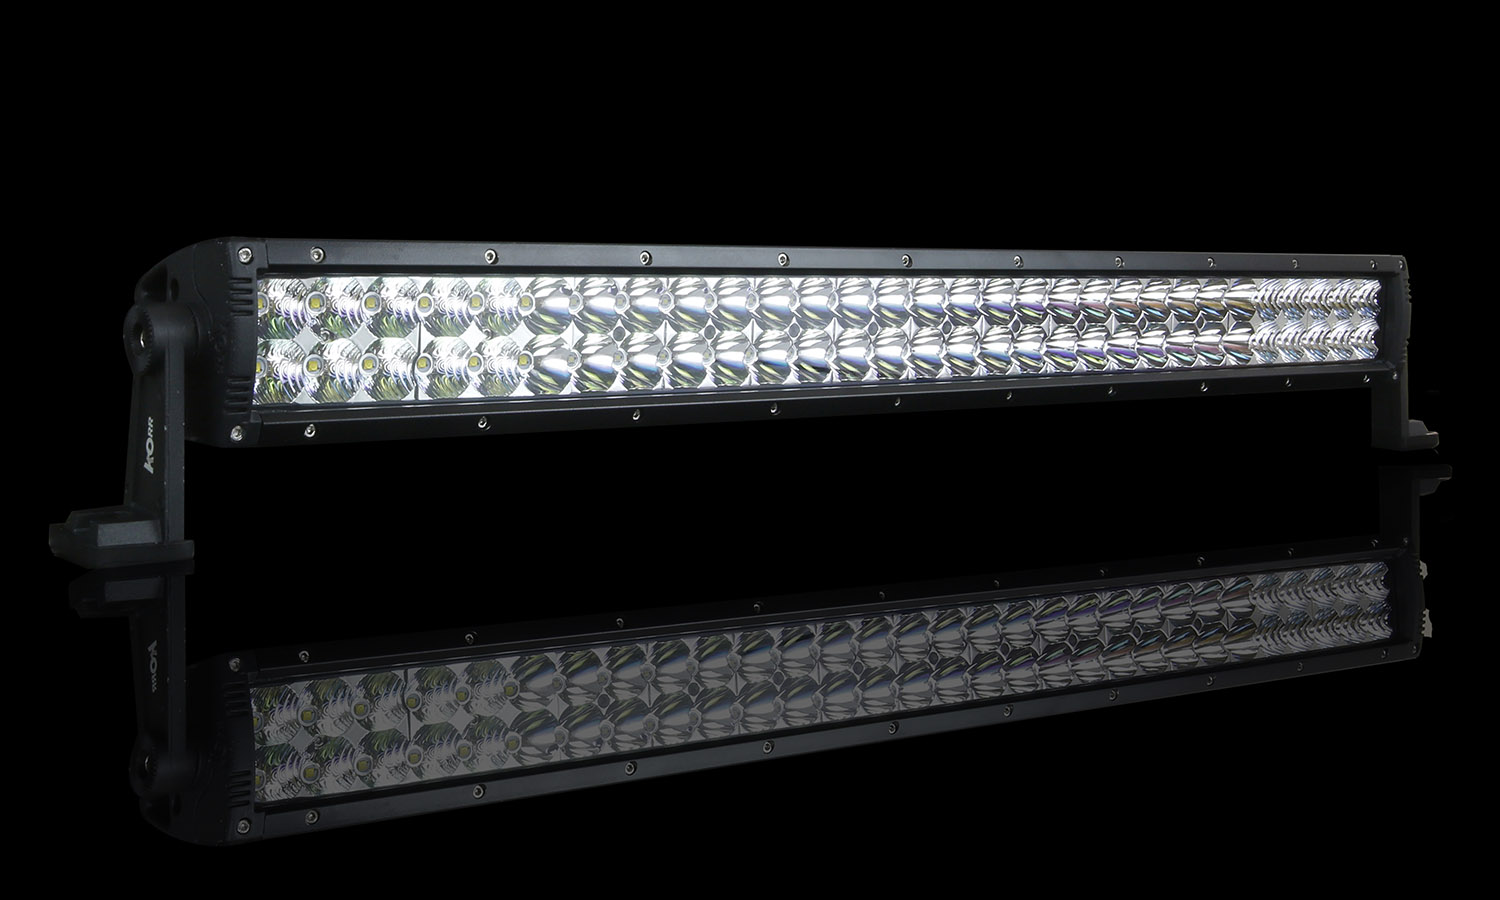 xd gen3 27 dual row led light bar xdd600 g3 hard korr nz. Black Bedroom Furniture Sets. Home Design Ideas